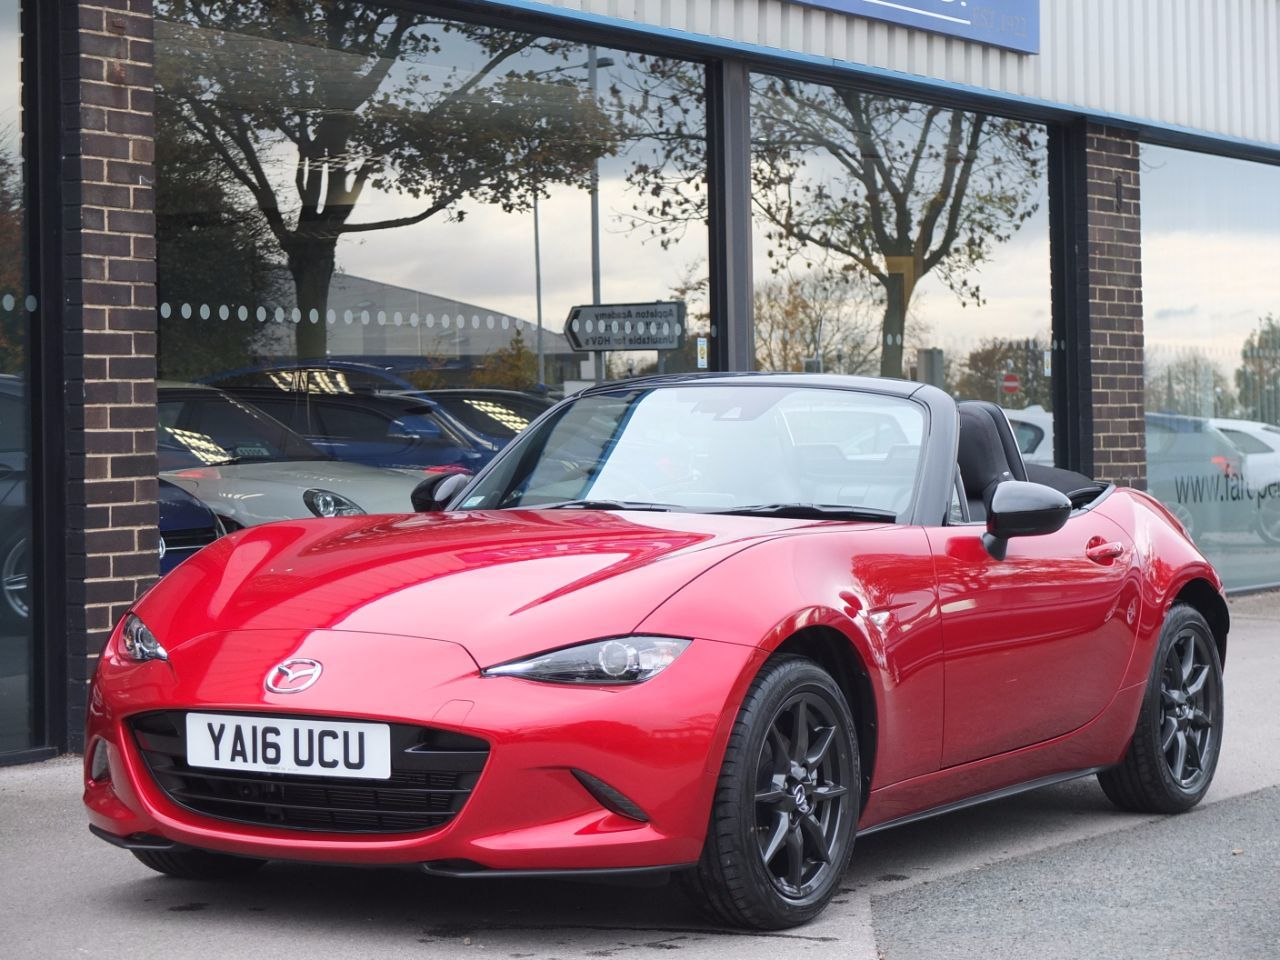 Mazda MX-5 1.5 Sport Nav Convertible Petrol Soul Red MetallicMazda MX-5 1.5 Sport Nav Convertible Petrol Soul Red Metallic at fa Roper Ltd Bradford